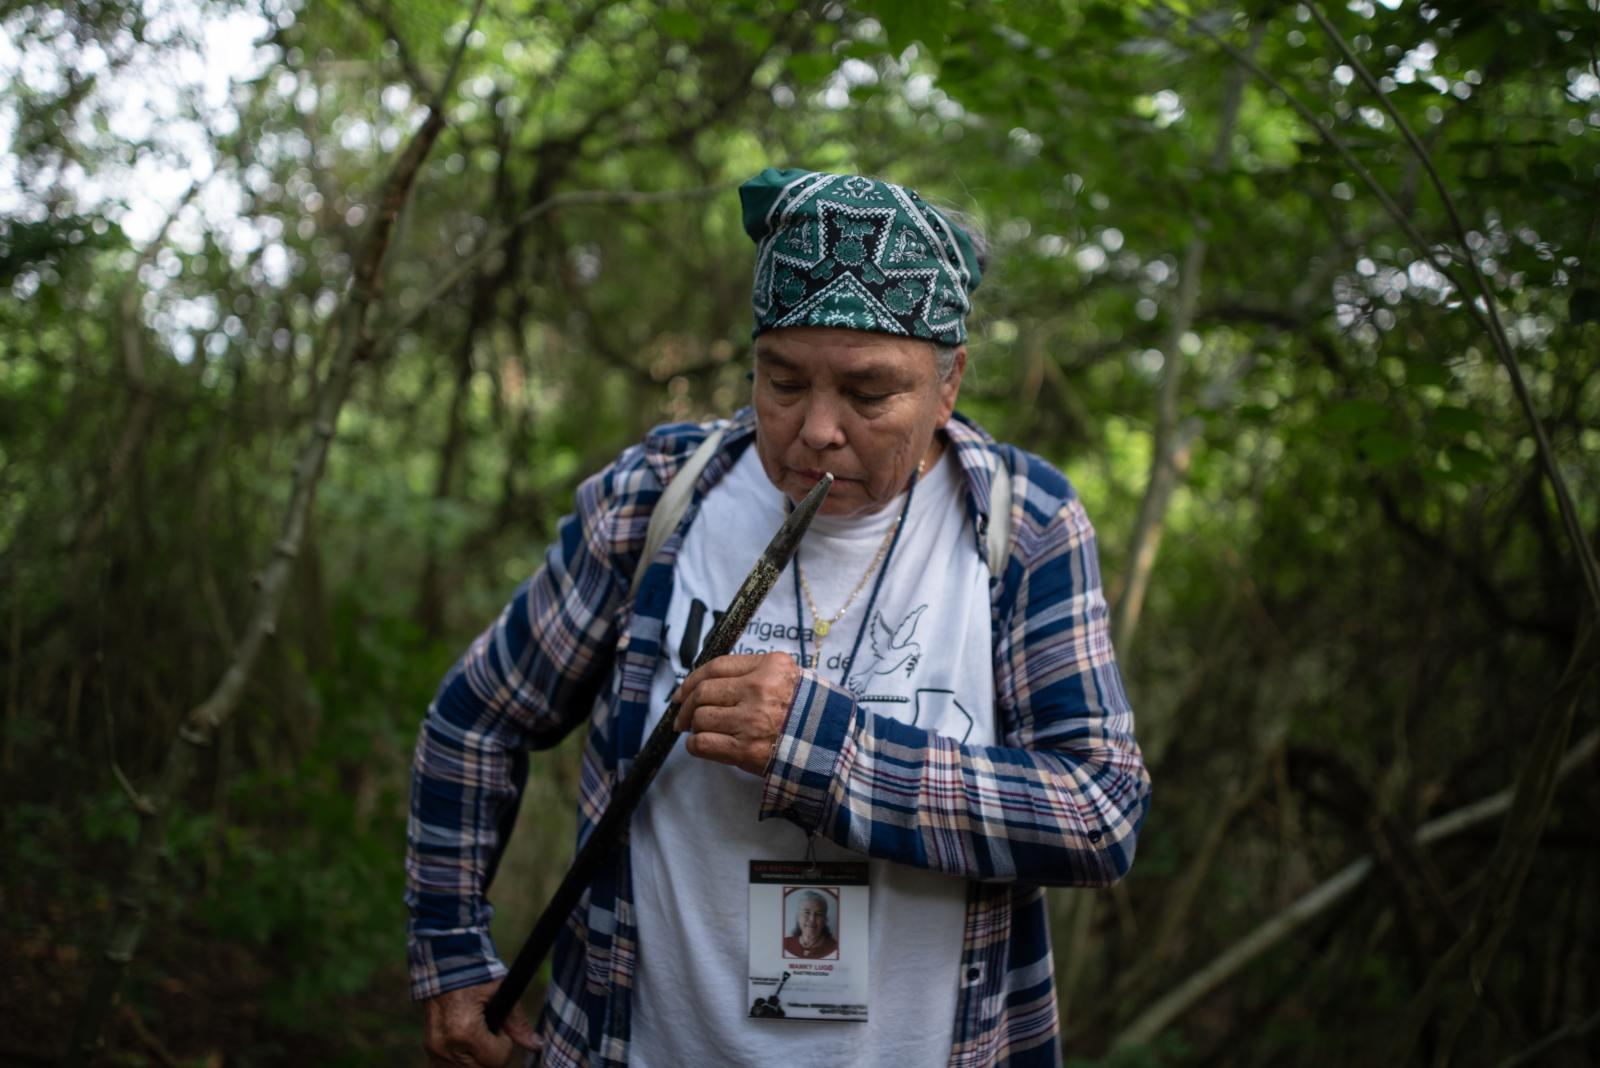 Manky Lugo, 64, seeker for missing persons of Sinaloa, Mexico, smells a metallic tool that buried in the earth in field that is investigated by police authorities and family groups participating in the fifth National Missing Persons Search Brigade in Tihuatlan, Veracruz, Mexico, on February 20, 2020. Victoria Razo for NPR